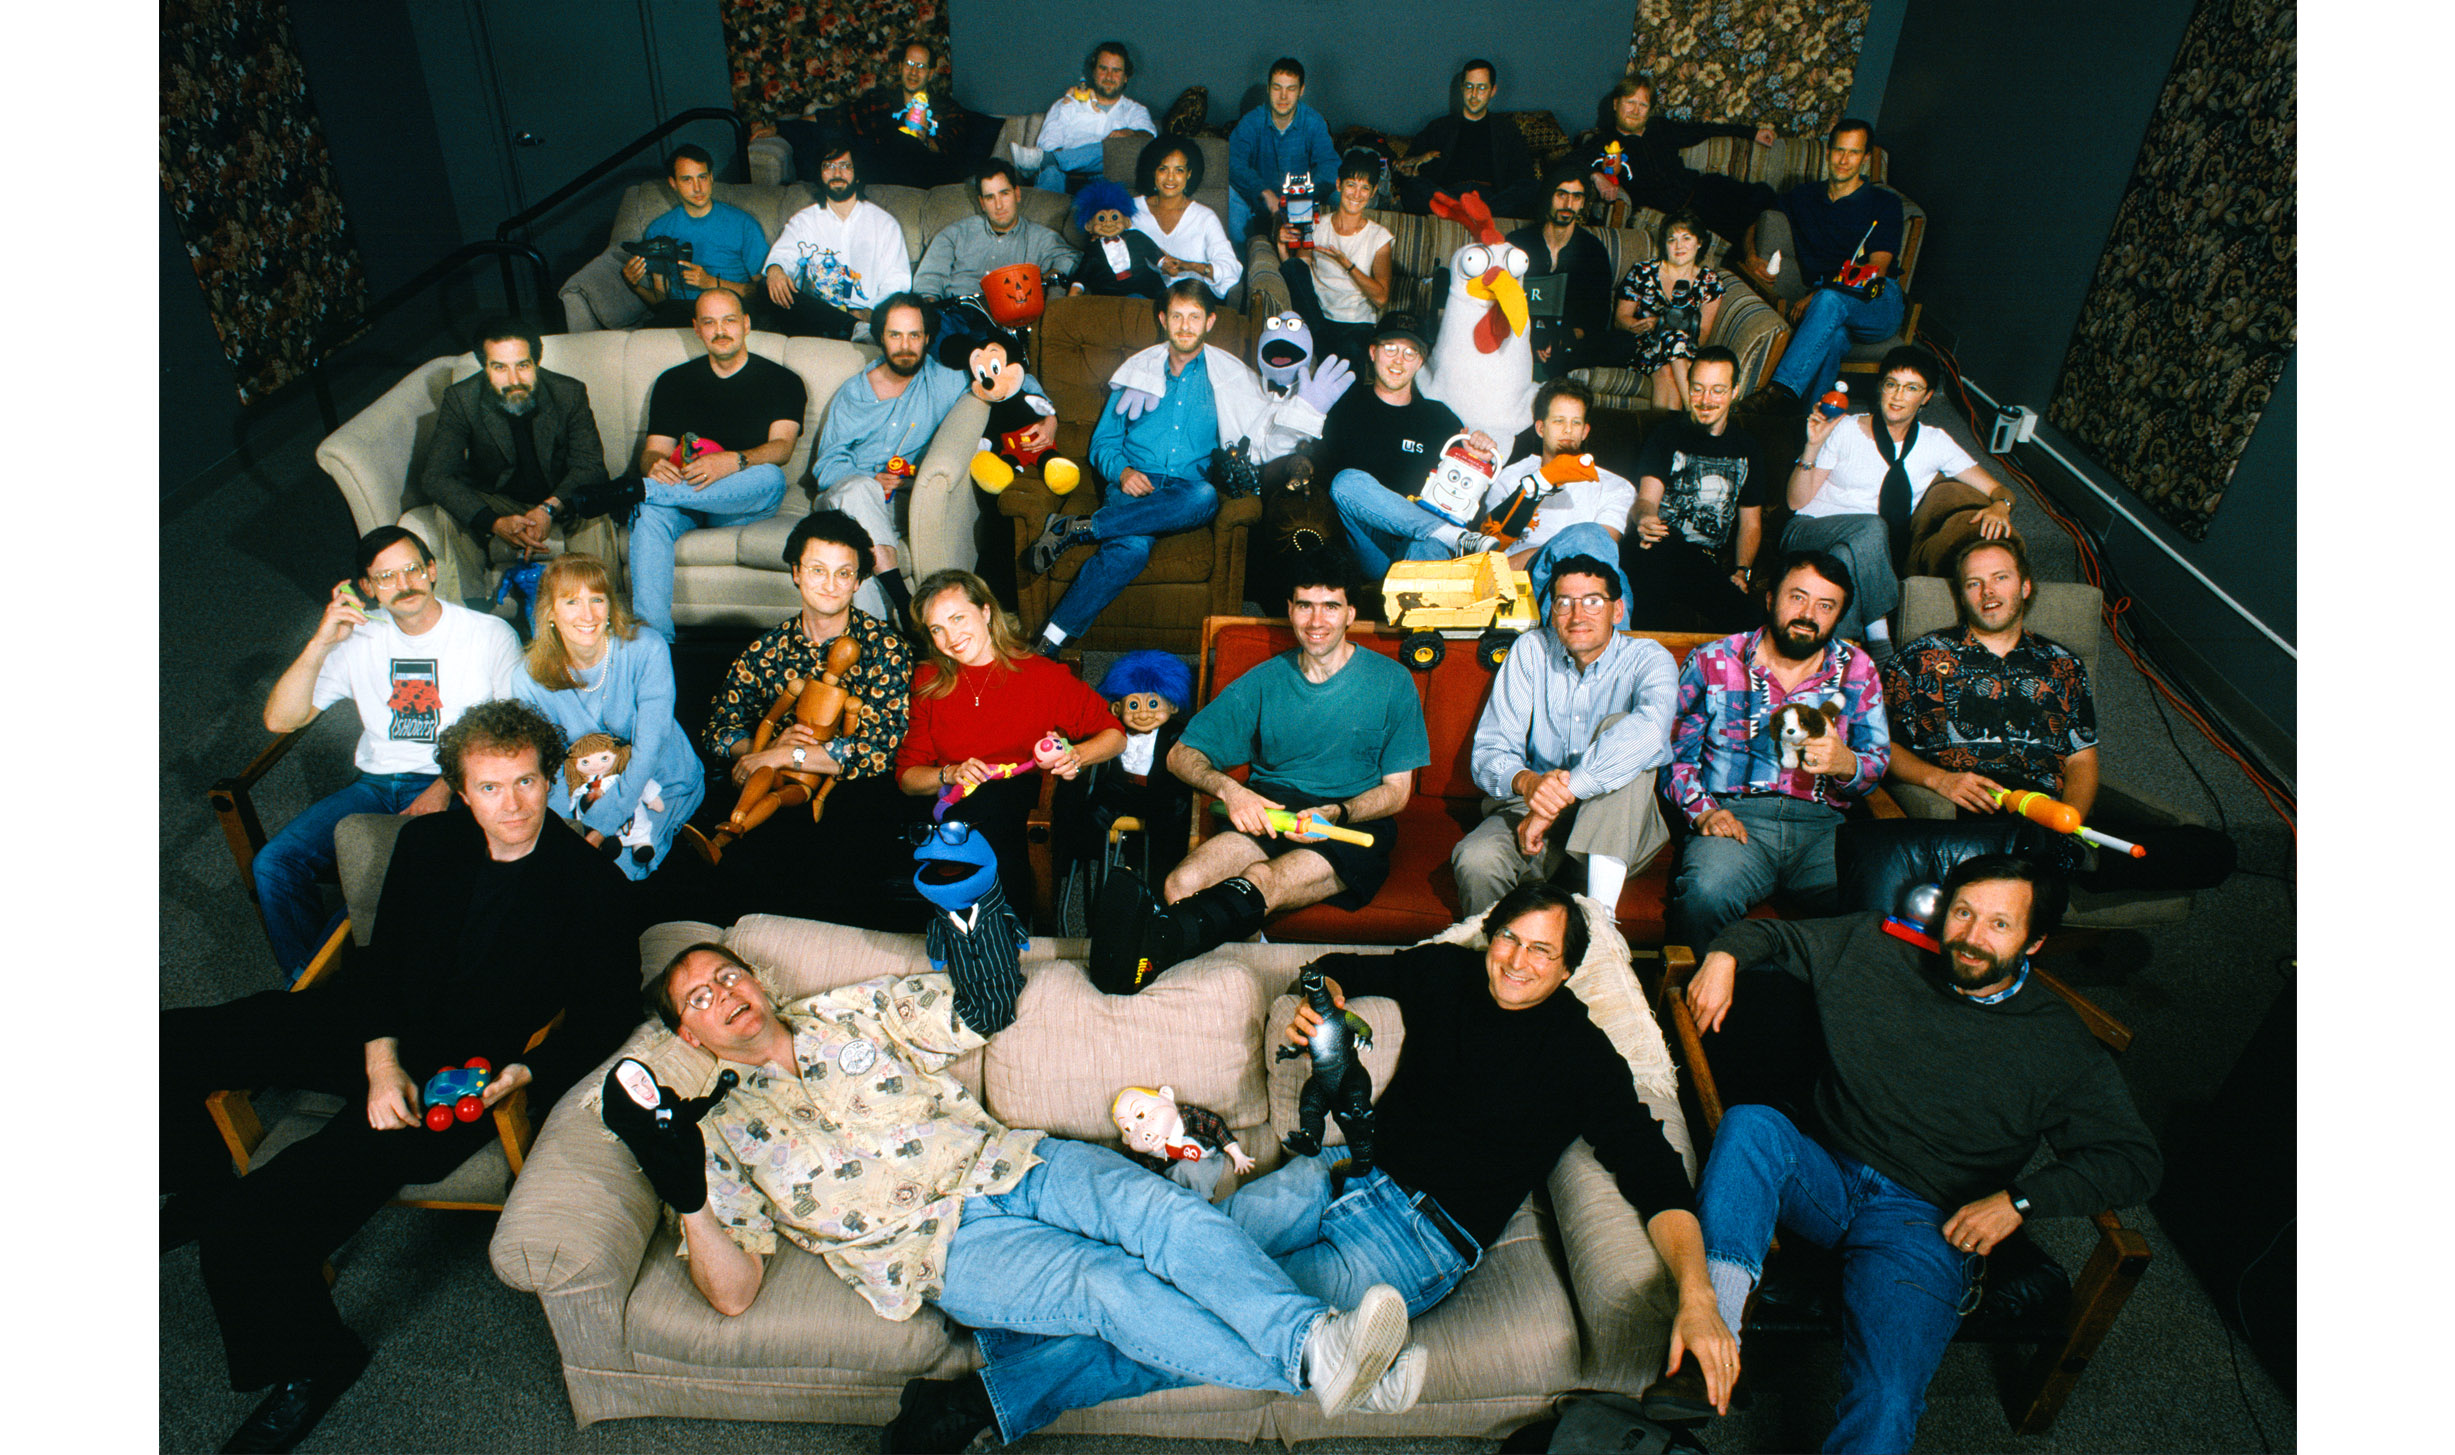 """A group of Pixarians shot for a 1995 Fortune feature, """"Steve Jobs' Amazing Movie Adventure."""" Levy, his leg in a black cast, is in the second row, behind Jobs and Lasseter."""